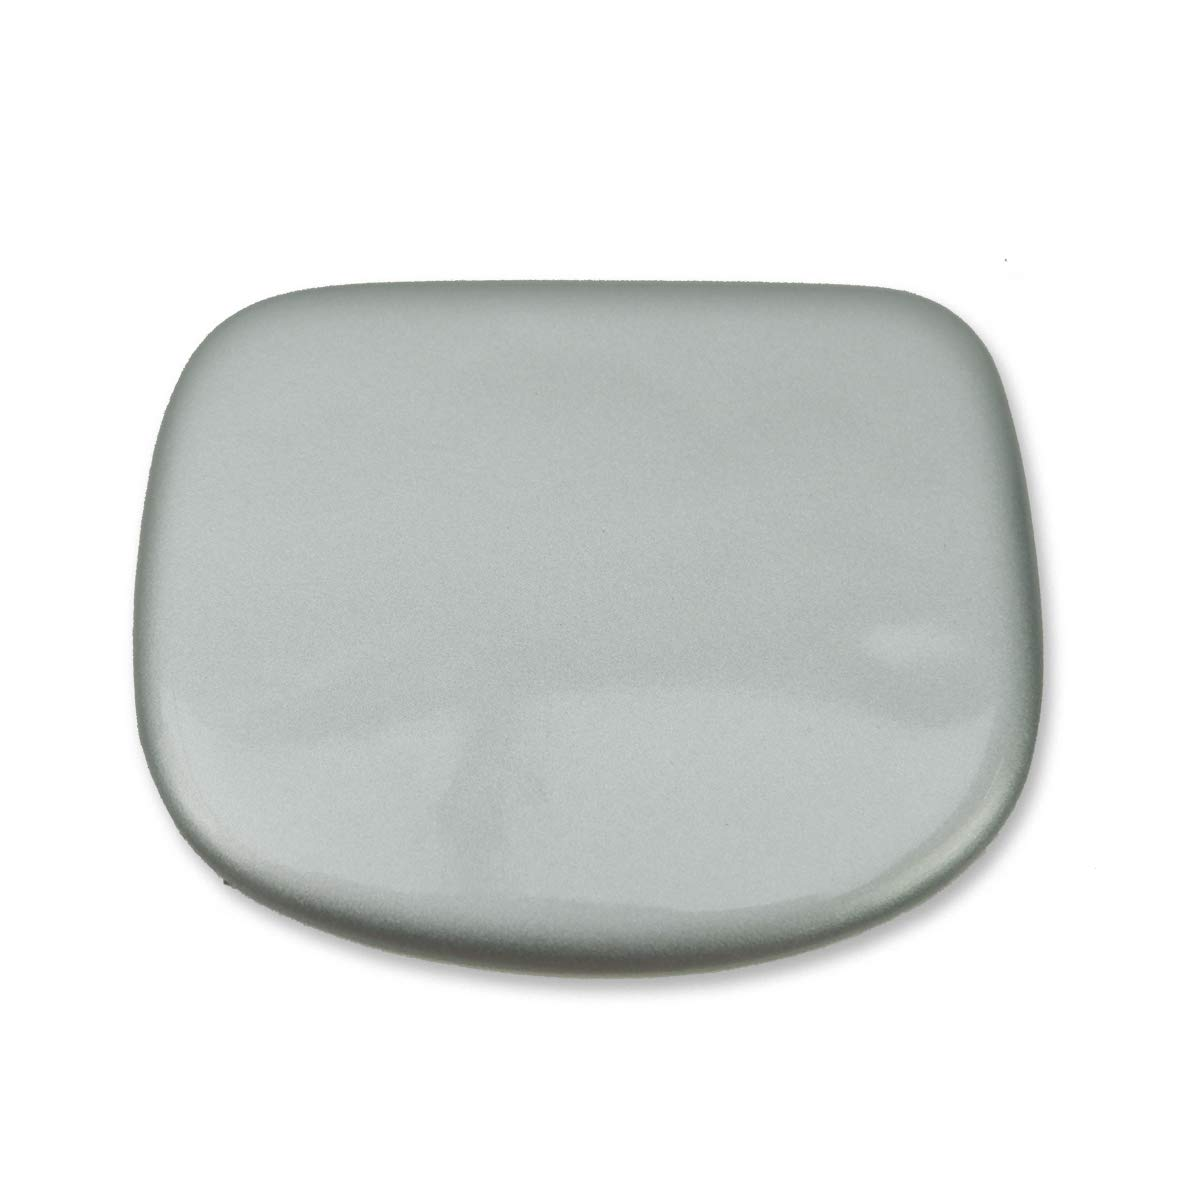 Nonstops Plastic Hole Rear Mirror Cover Silver Fits Toyota Hiace Commuter D4D 2005 2018 by Nonstops